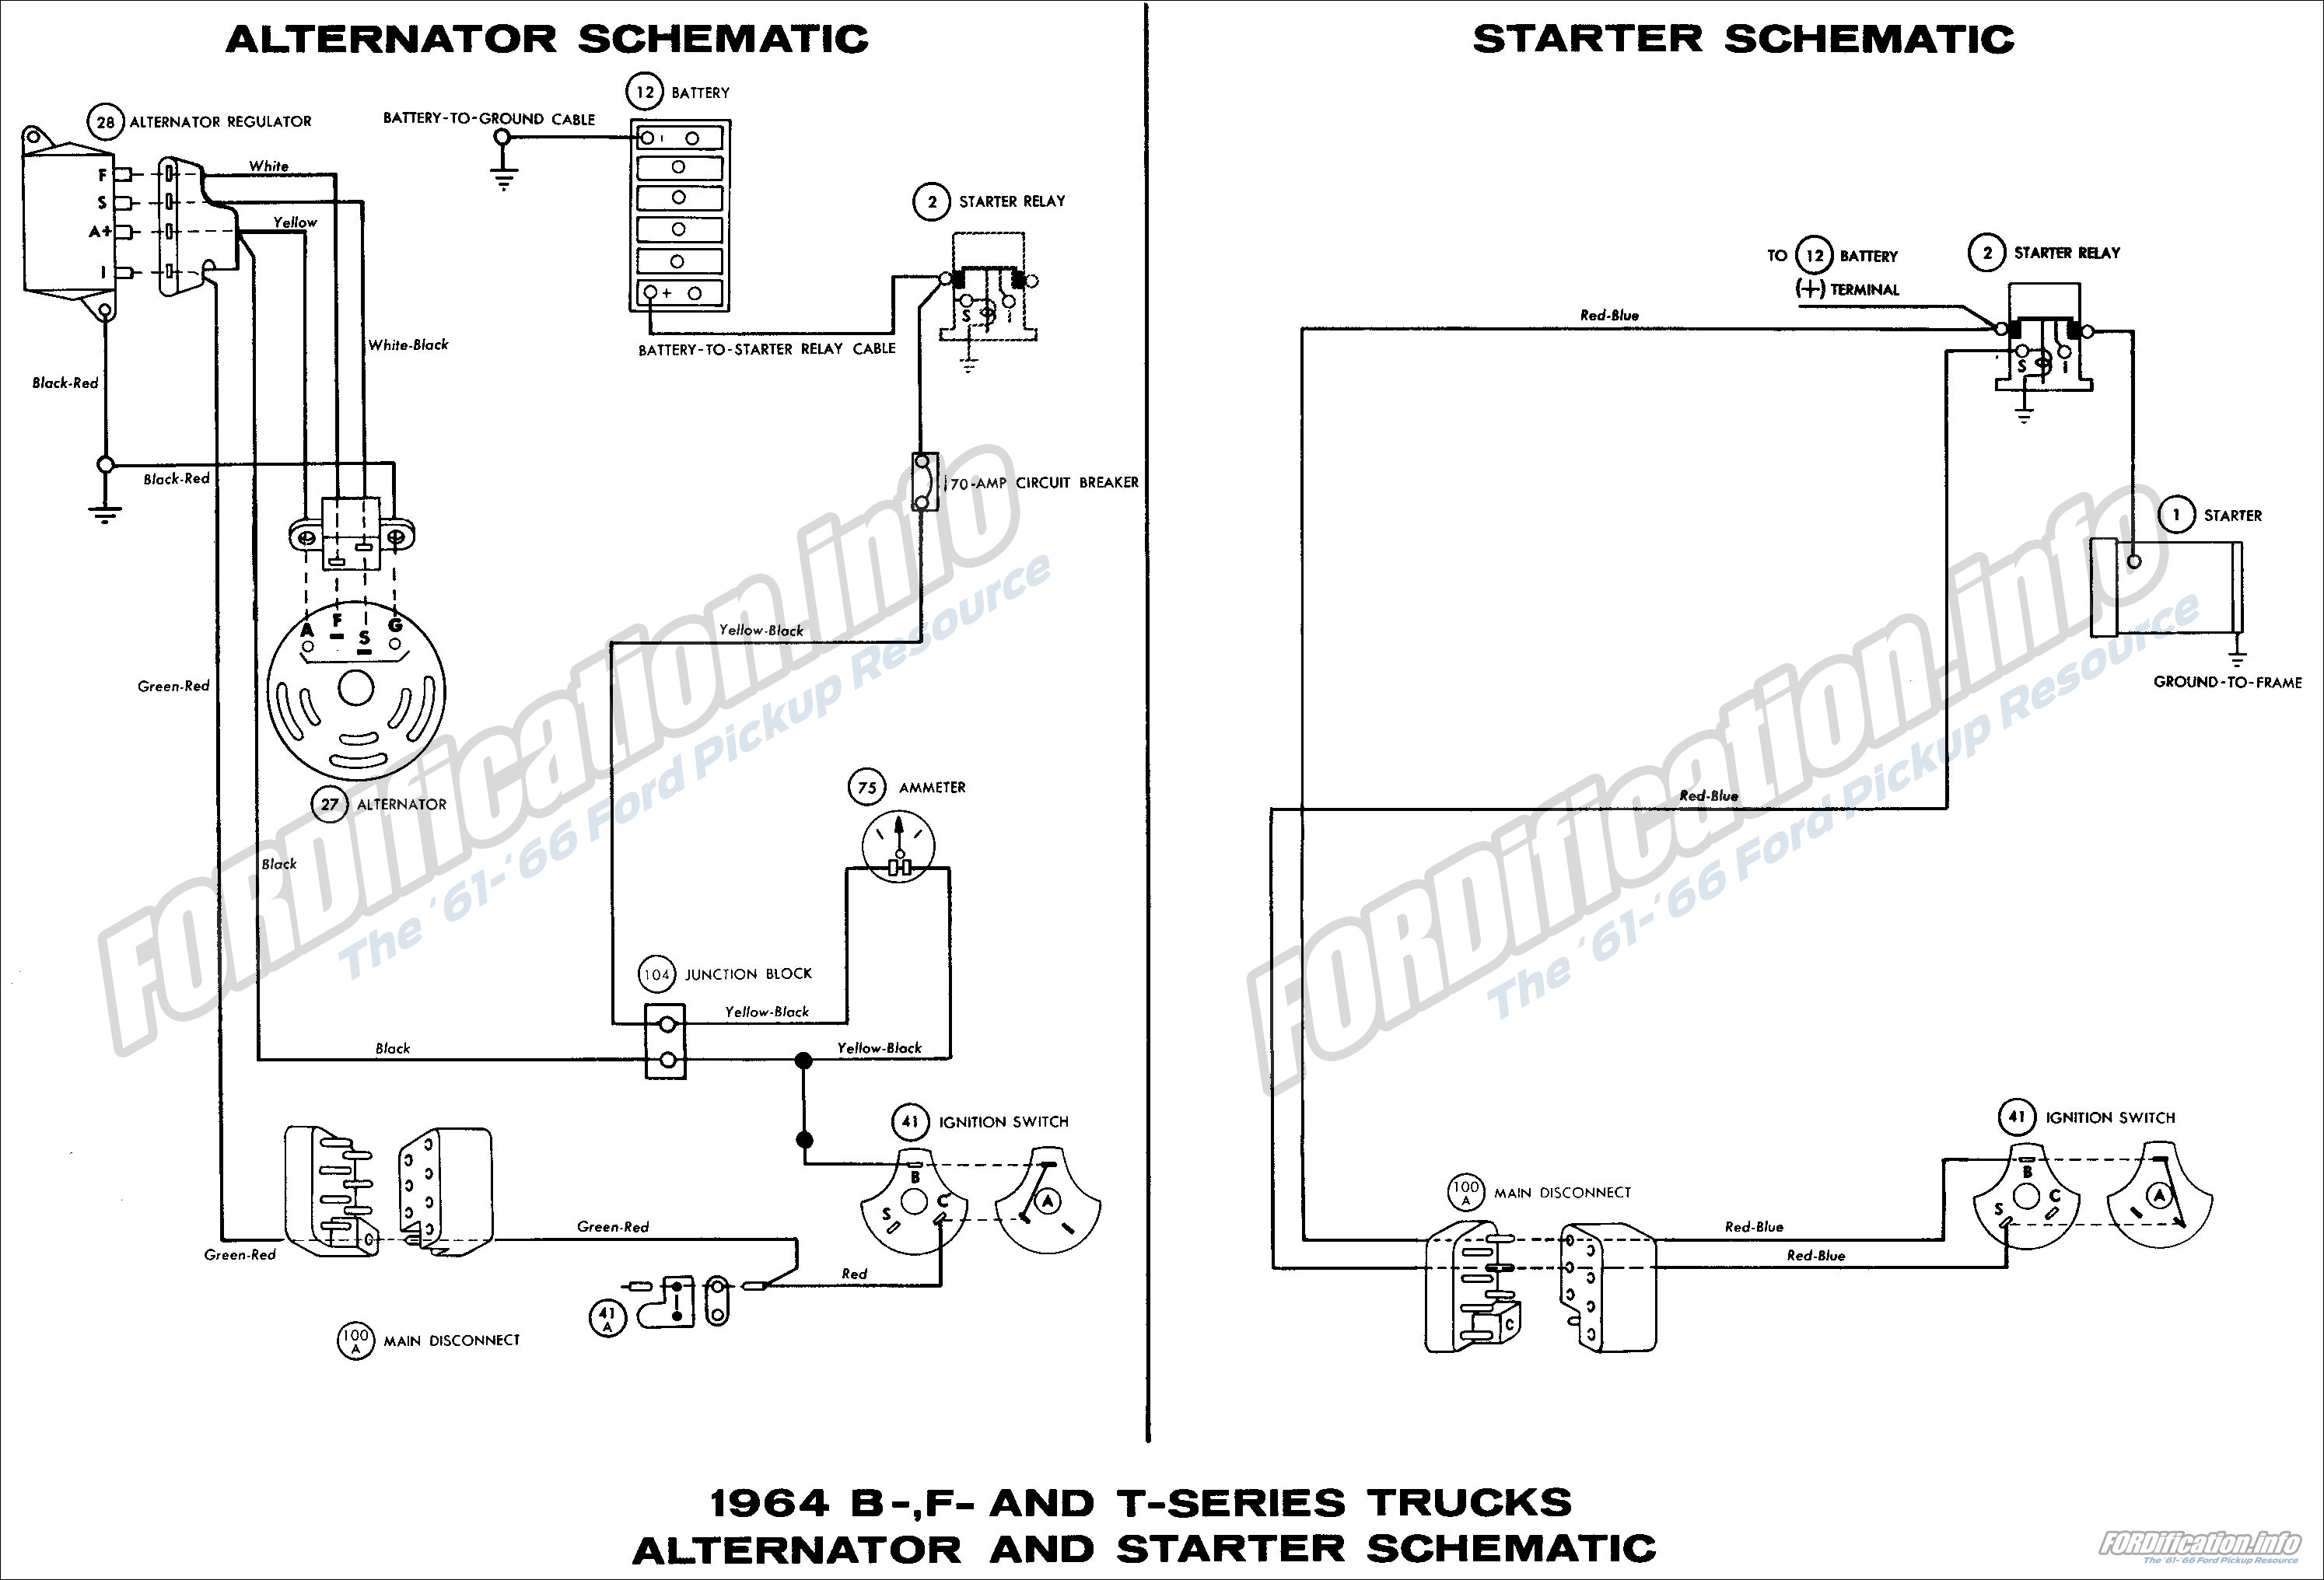 1972 Ford F100 Ignition Switch Wiring Diagram from www.fordification.info